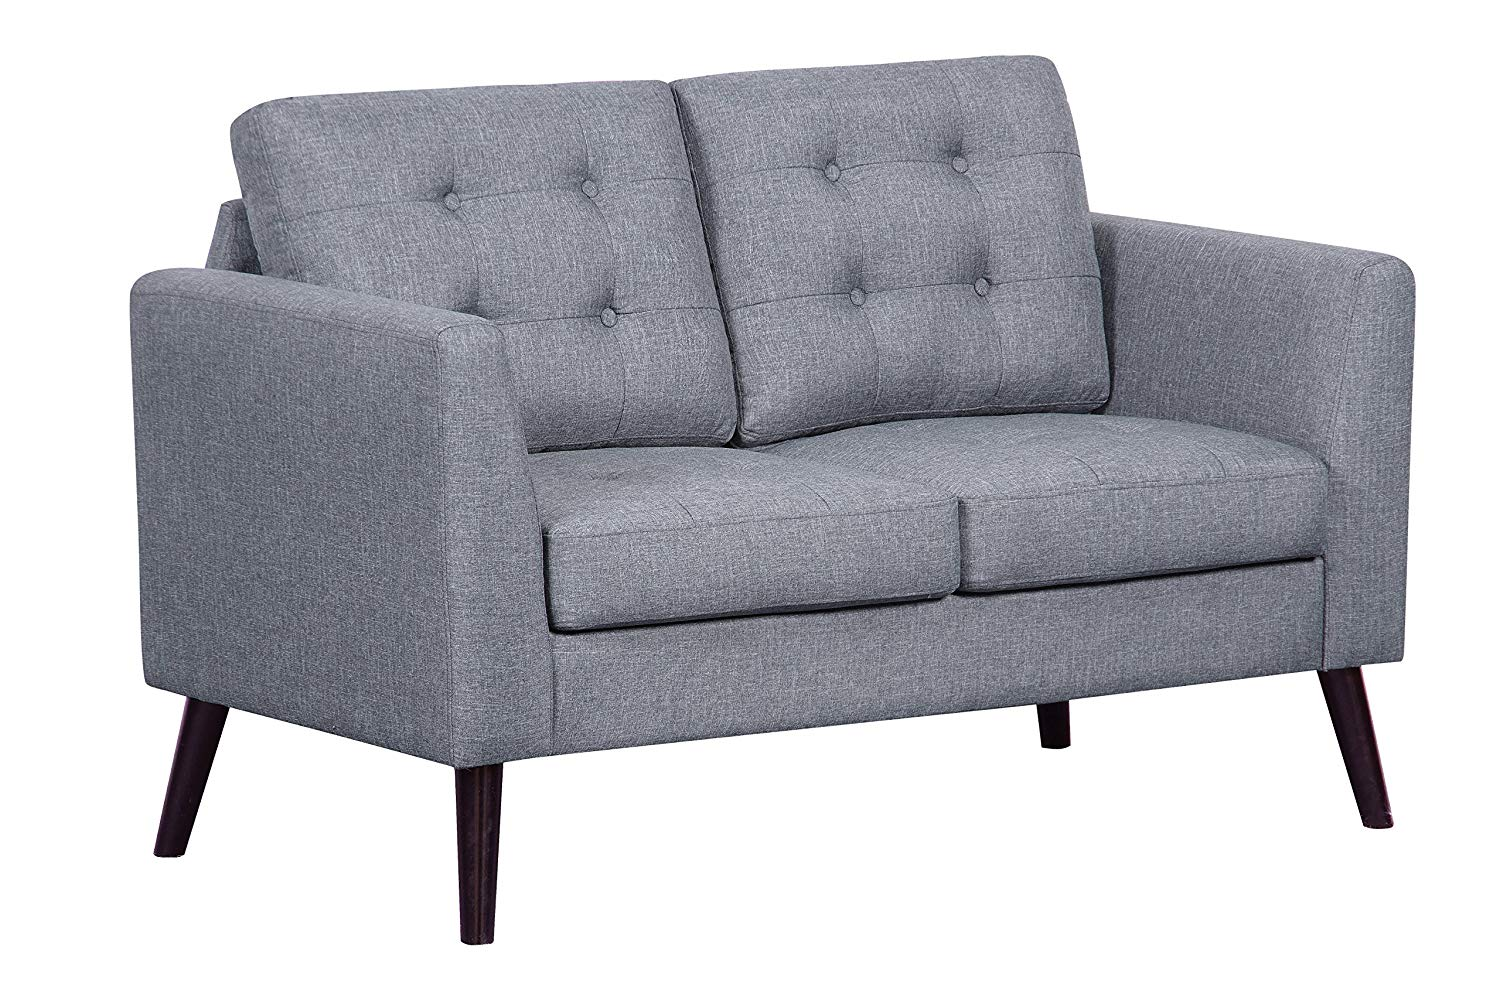 Container Furniture Direct S5293-L Mysterious Flower Linen Upholstered Mid-Century Modern Loveseat, Light Grey